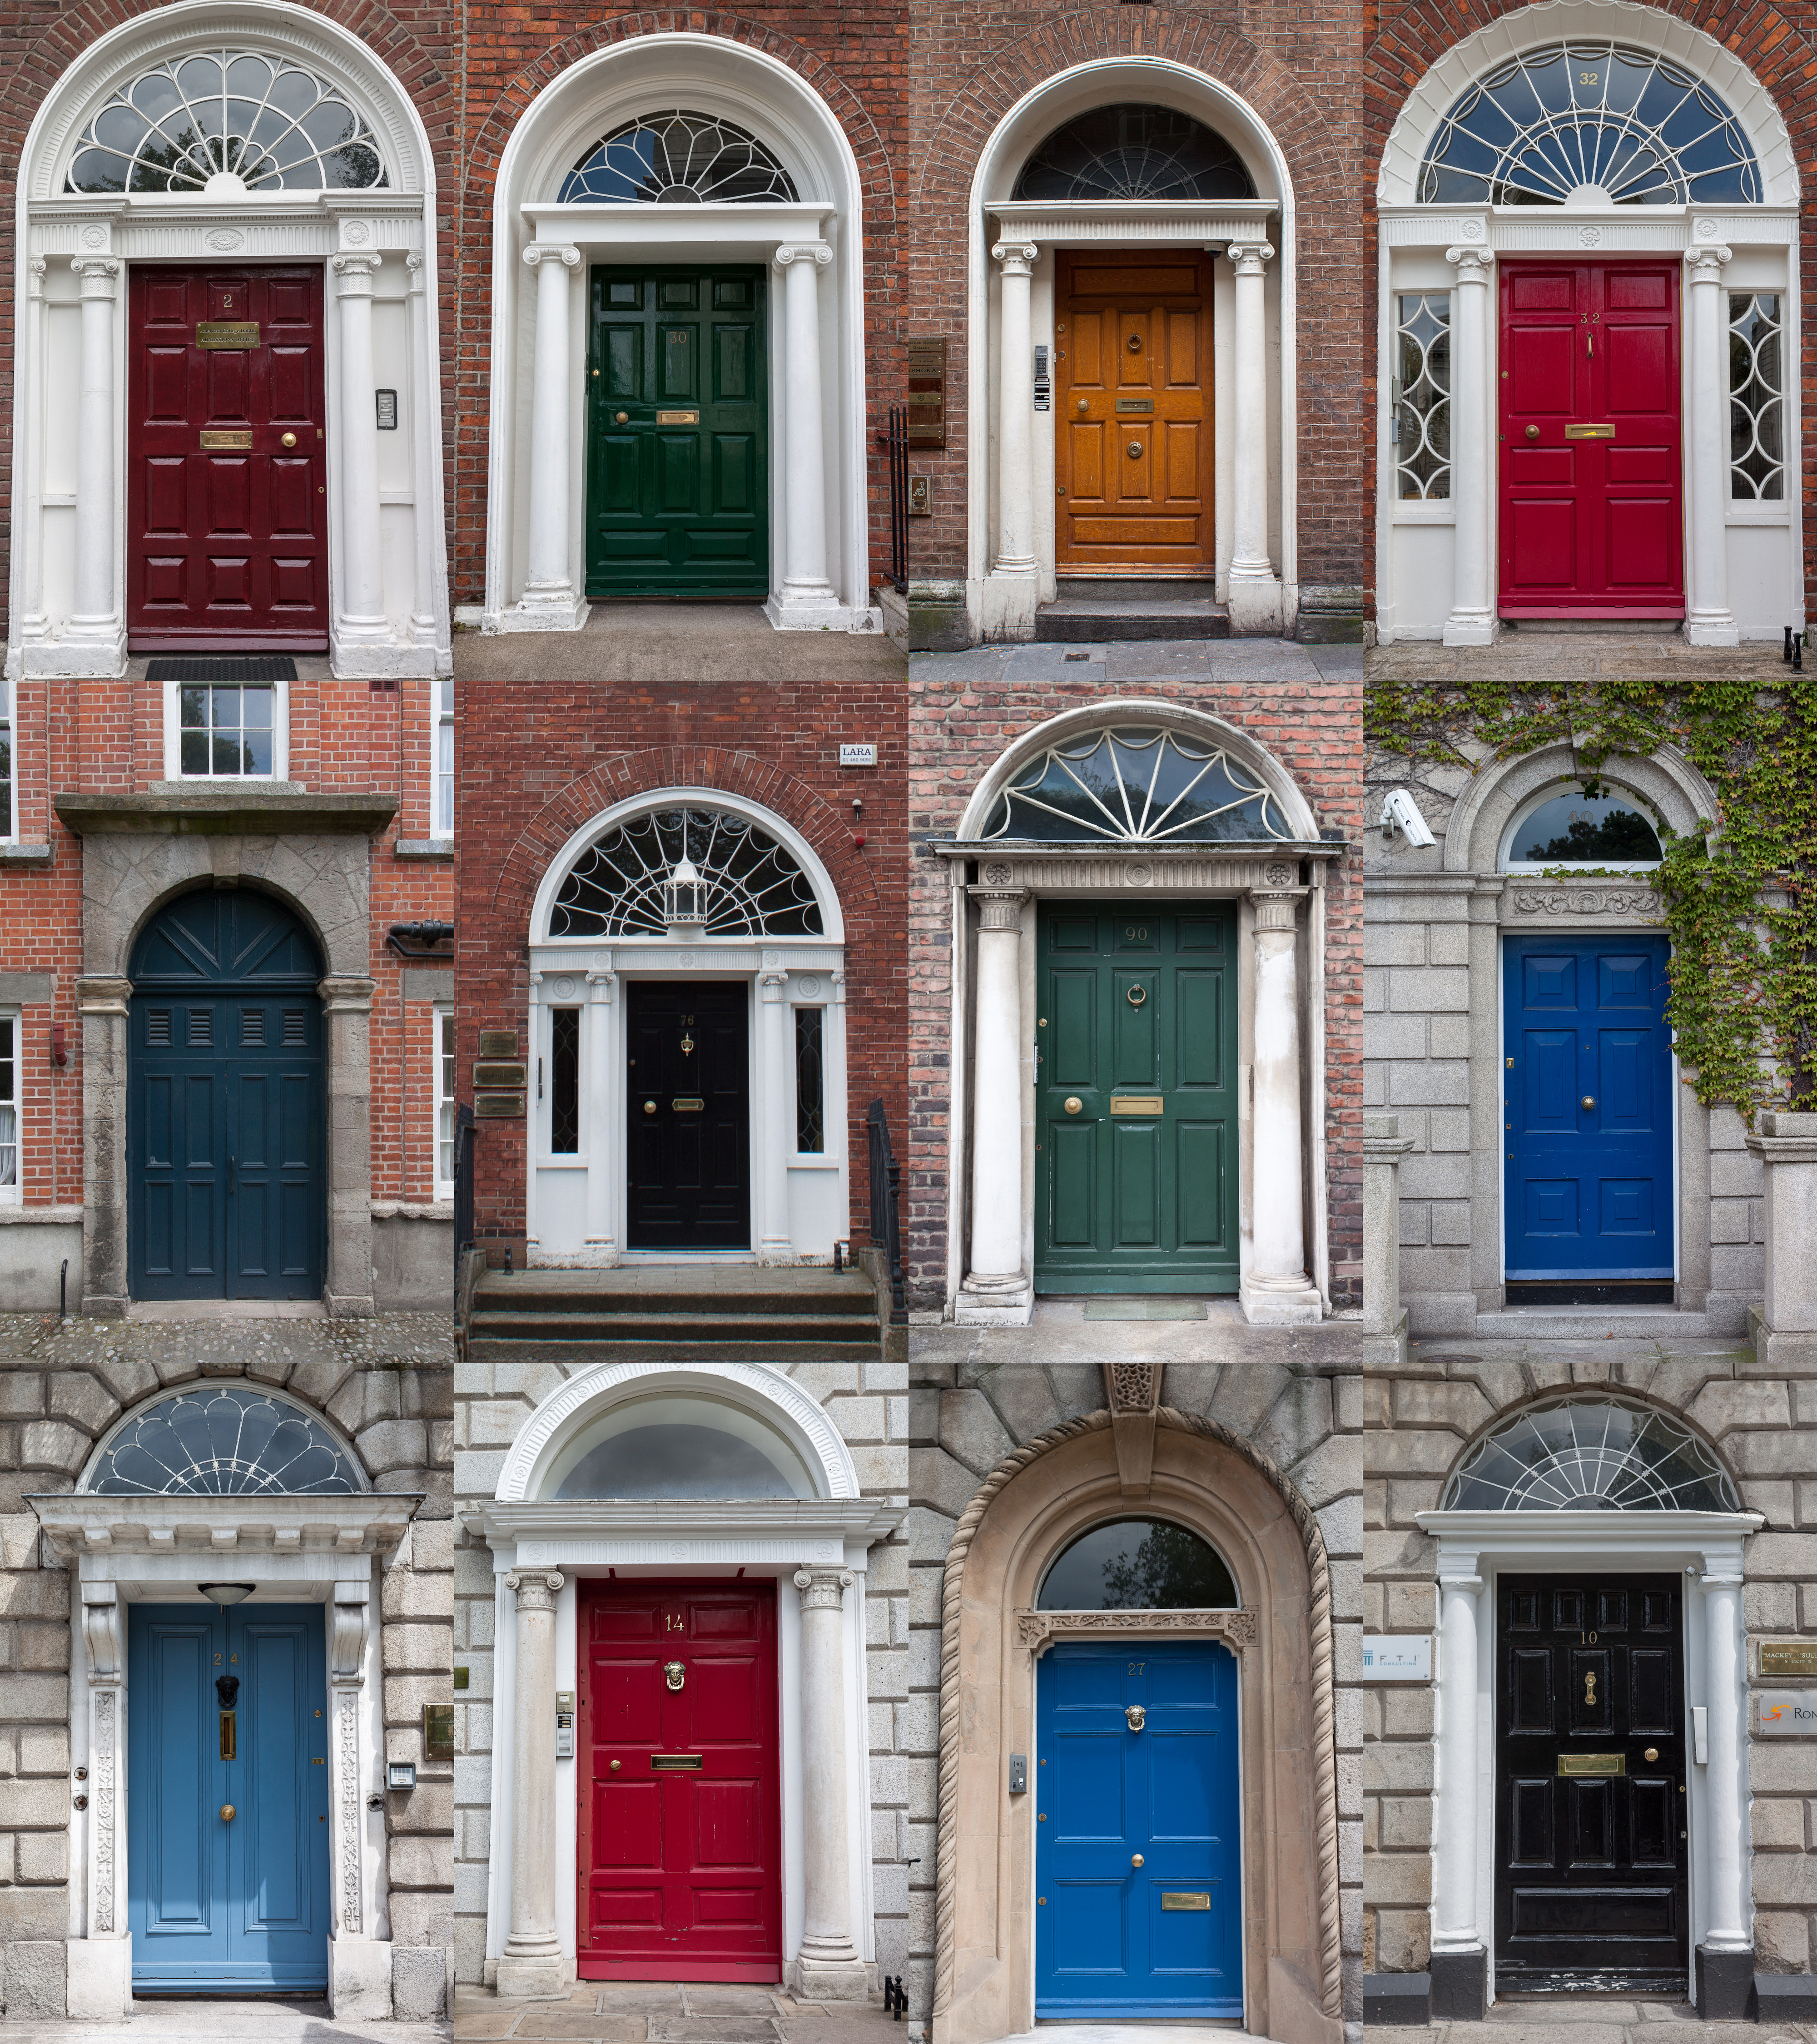 Customized Doors & Collections of Customized Doors - Free Home Designs Photos Ideas Pezcame.Com